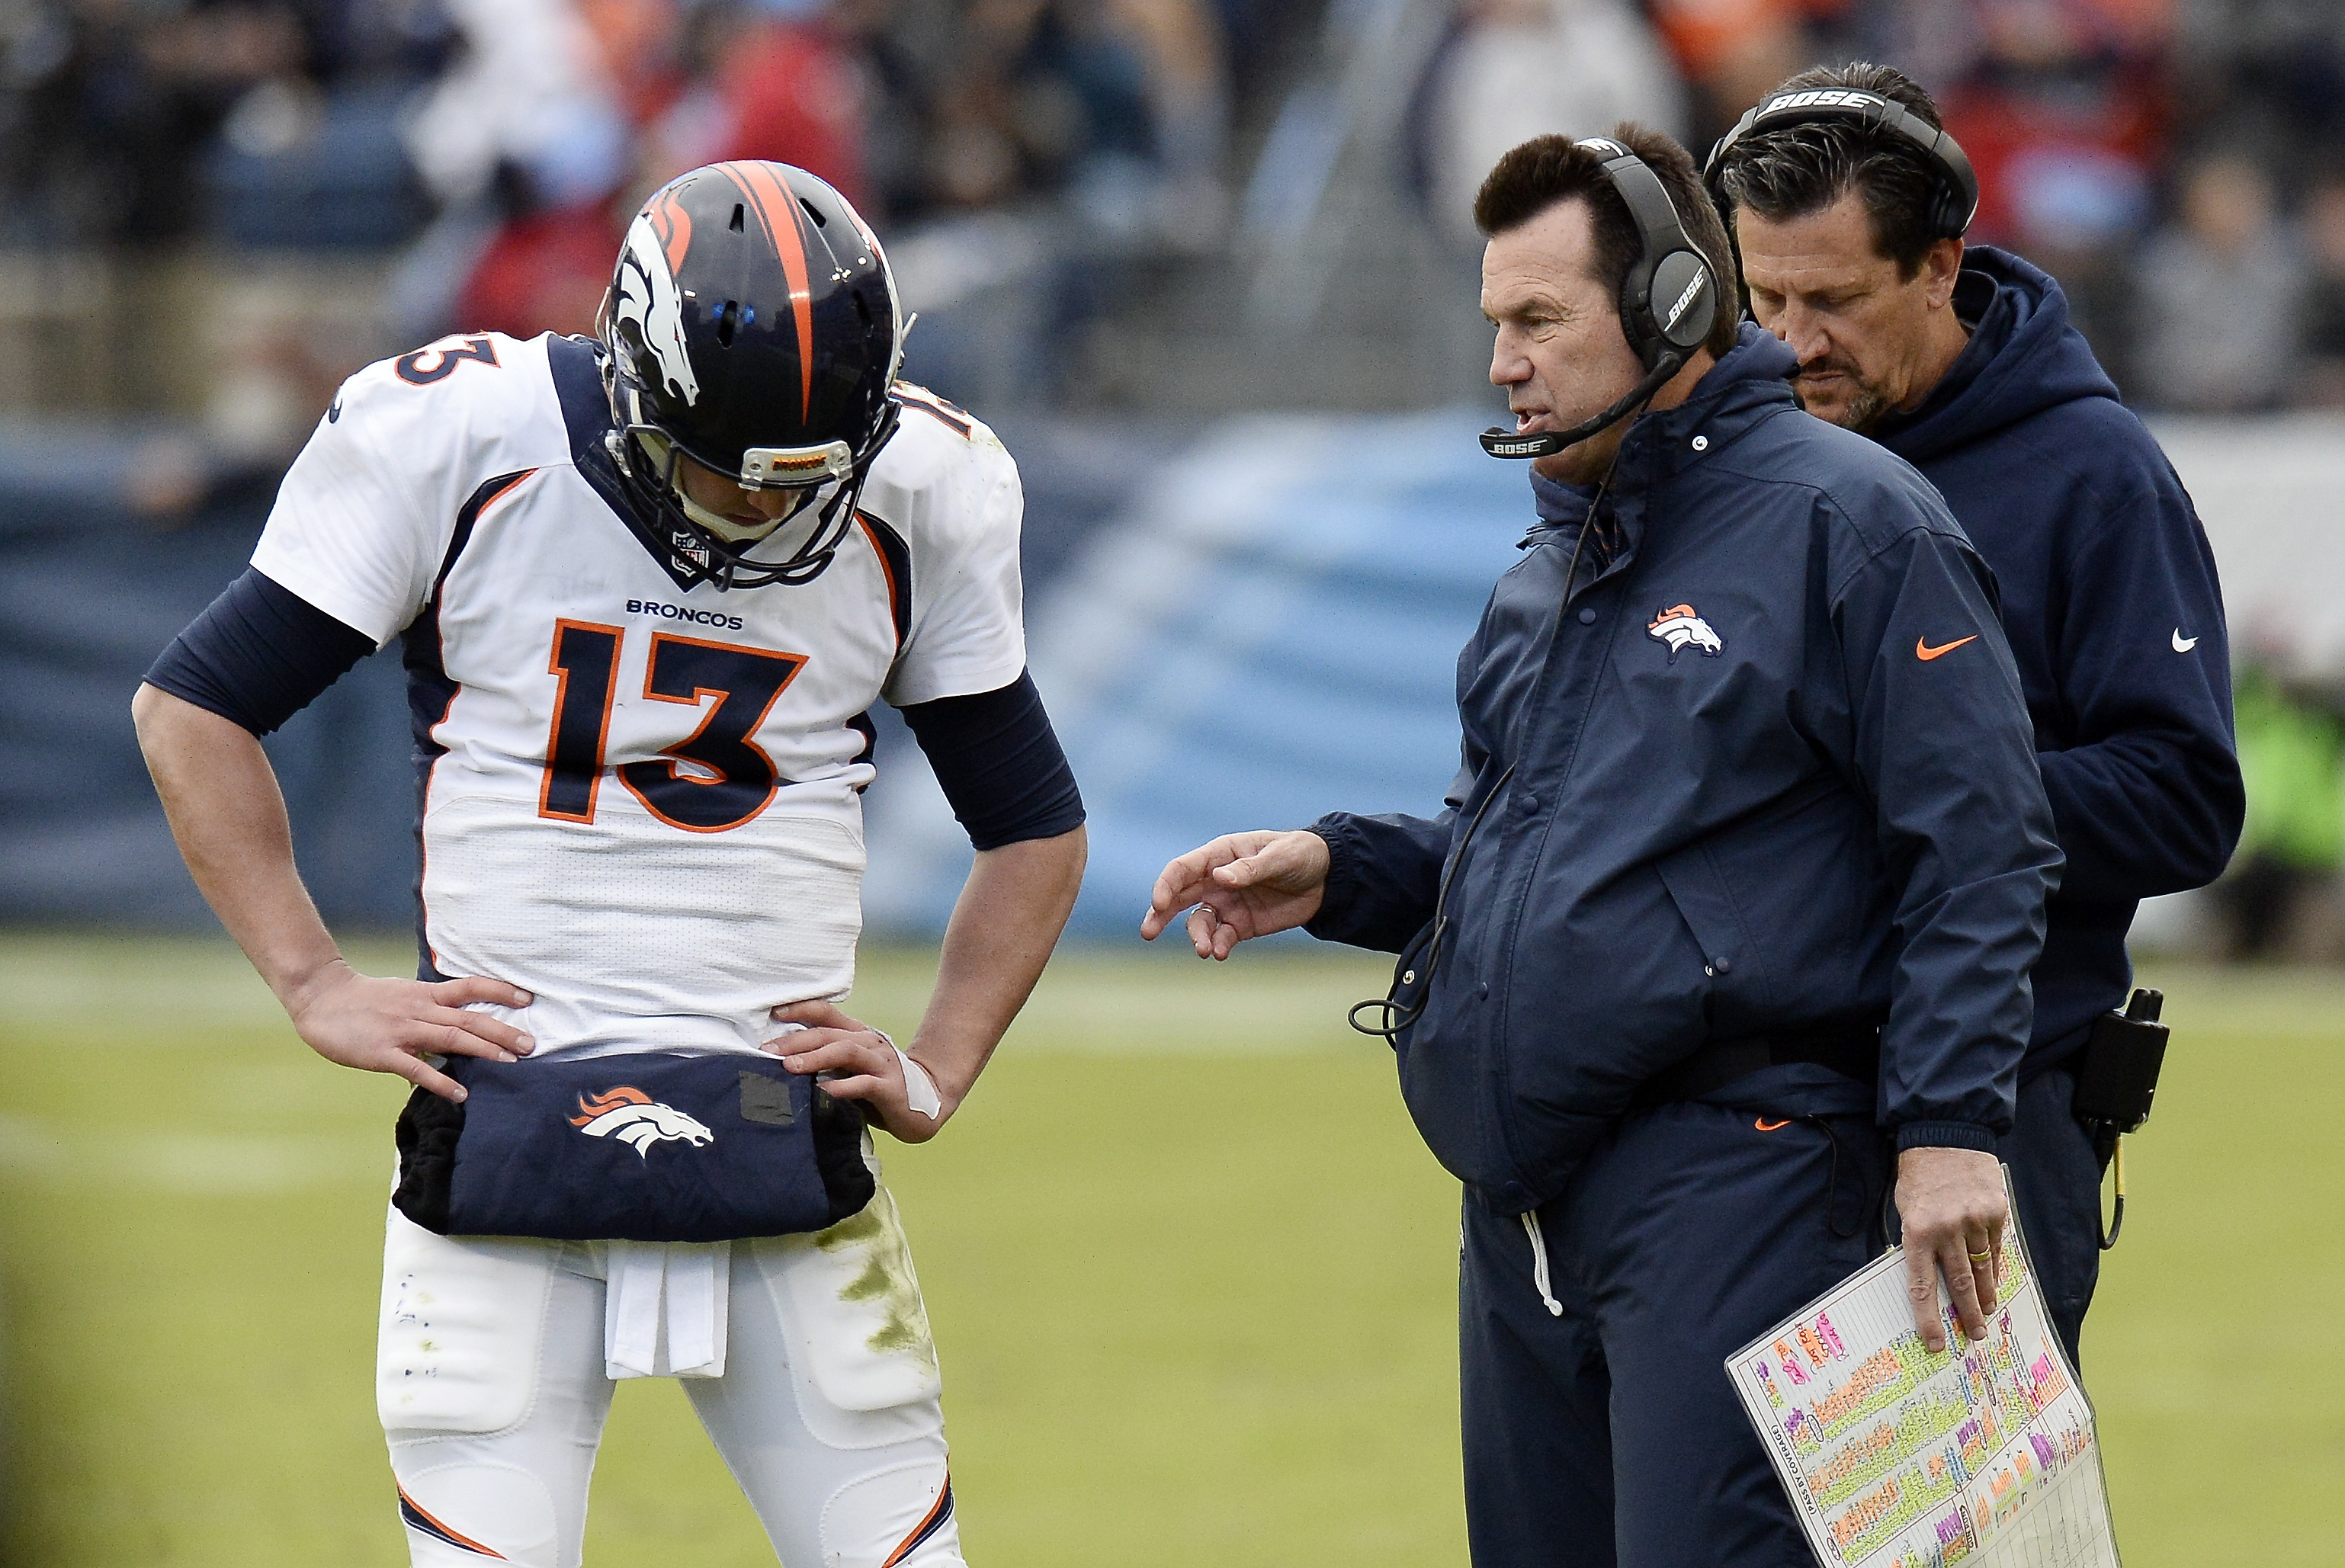 Denver Broncos head coach Gary Kubiak, center, talks with quarterback Trevor Siemian (13) in the second half of an NFL football game against the Tennessee Titans Sunday, Dec. 11, 2016, in Nashville, Tenn. (AP Photo/Mark Zaleski)